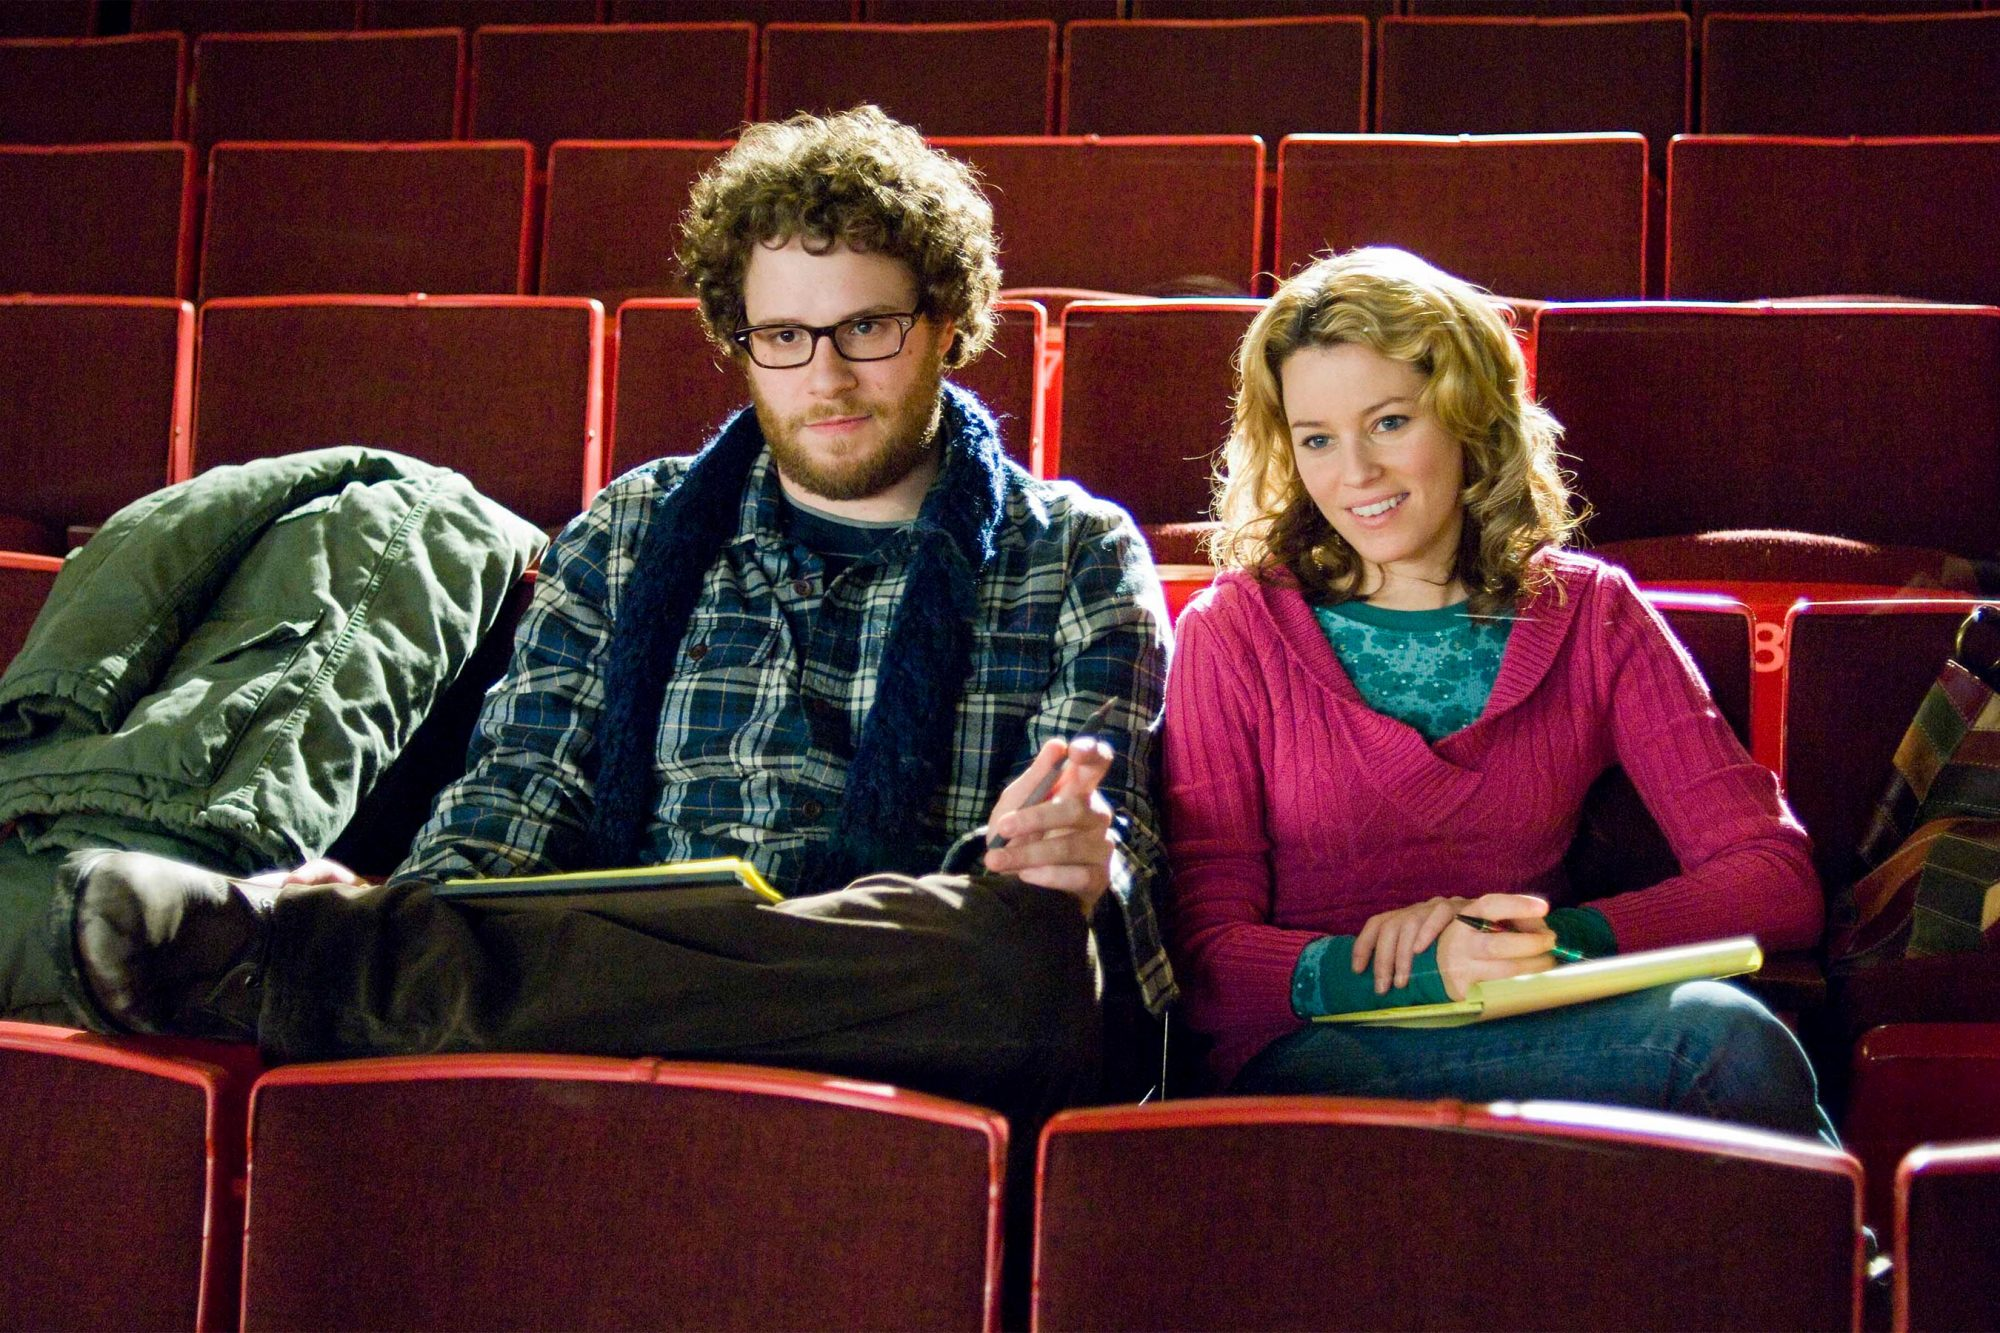 4. Seth Rogen and Elizabeth Banks in Zack and Miri Make a Porno (2008)